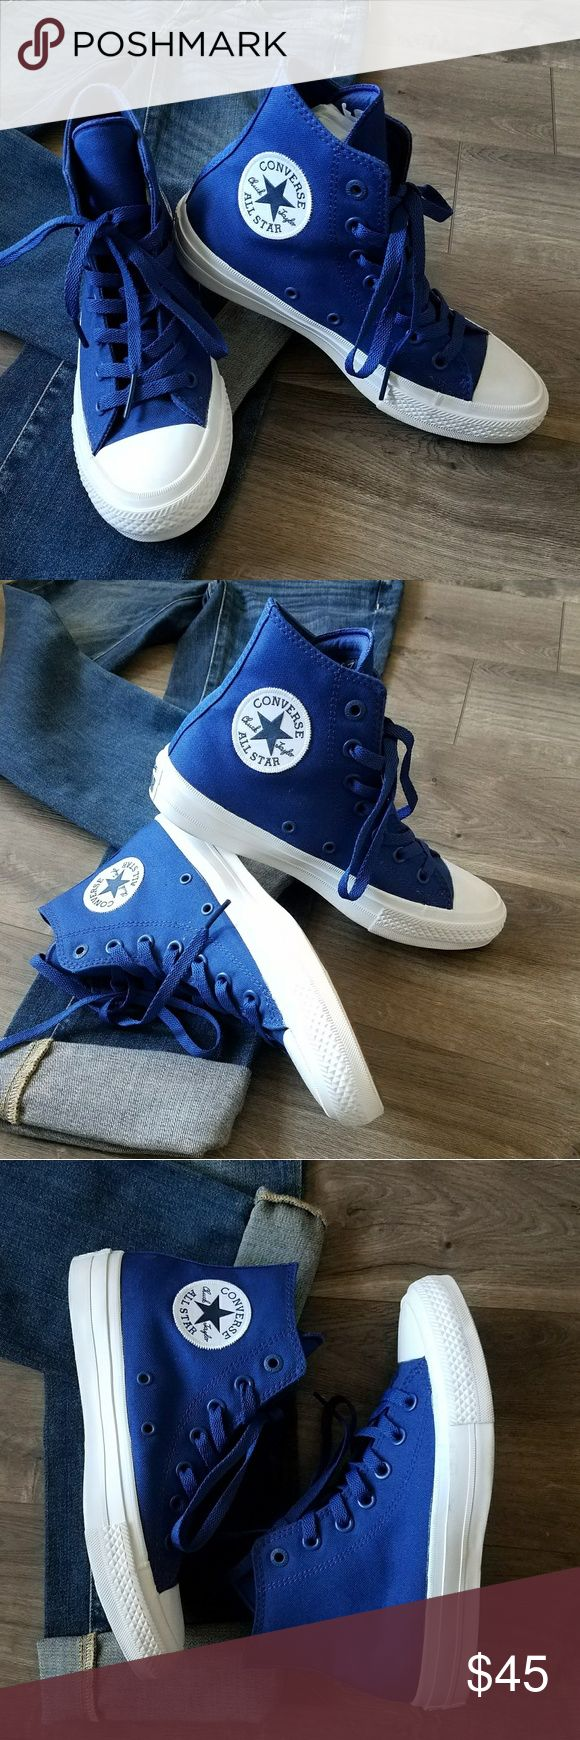 Converse Chuck Taylor ll New without box.   Converse Chuck Taylor ll high top.  Featuring Nike lunarlon insoles.  Comes with extra white shoe laces. Converse Shoes Sneakers